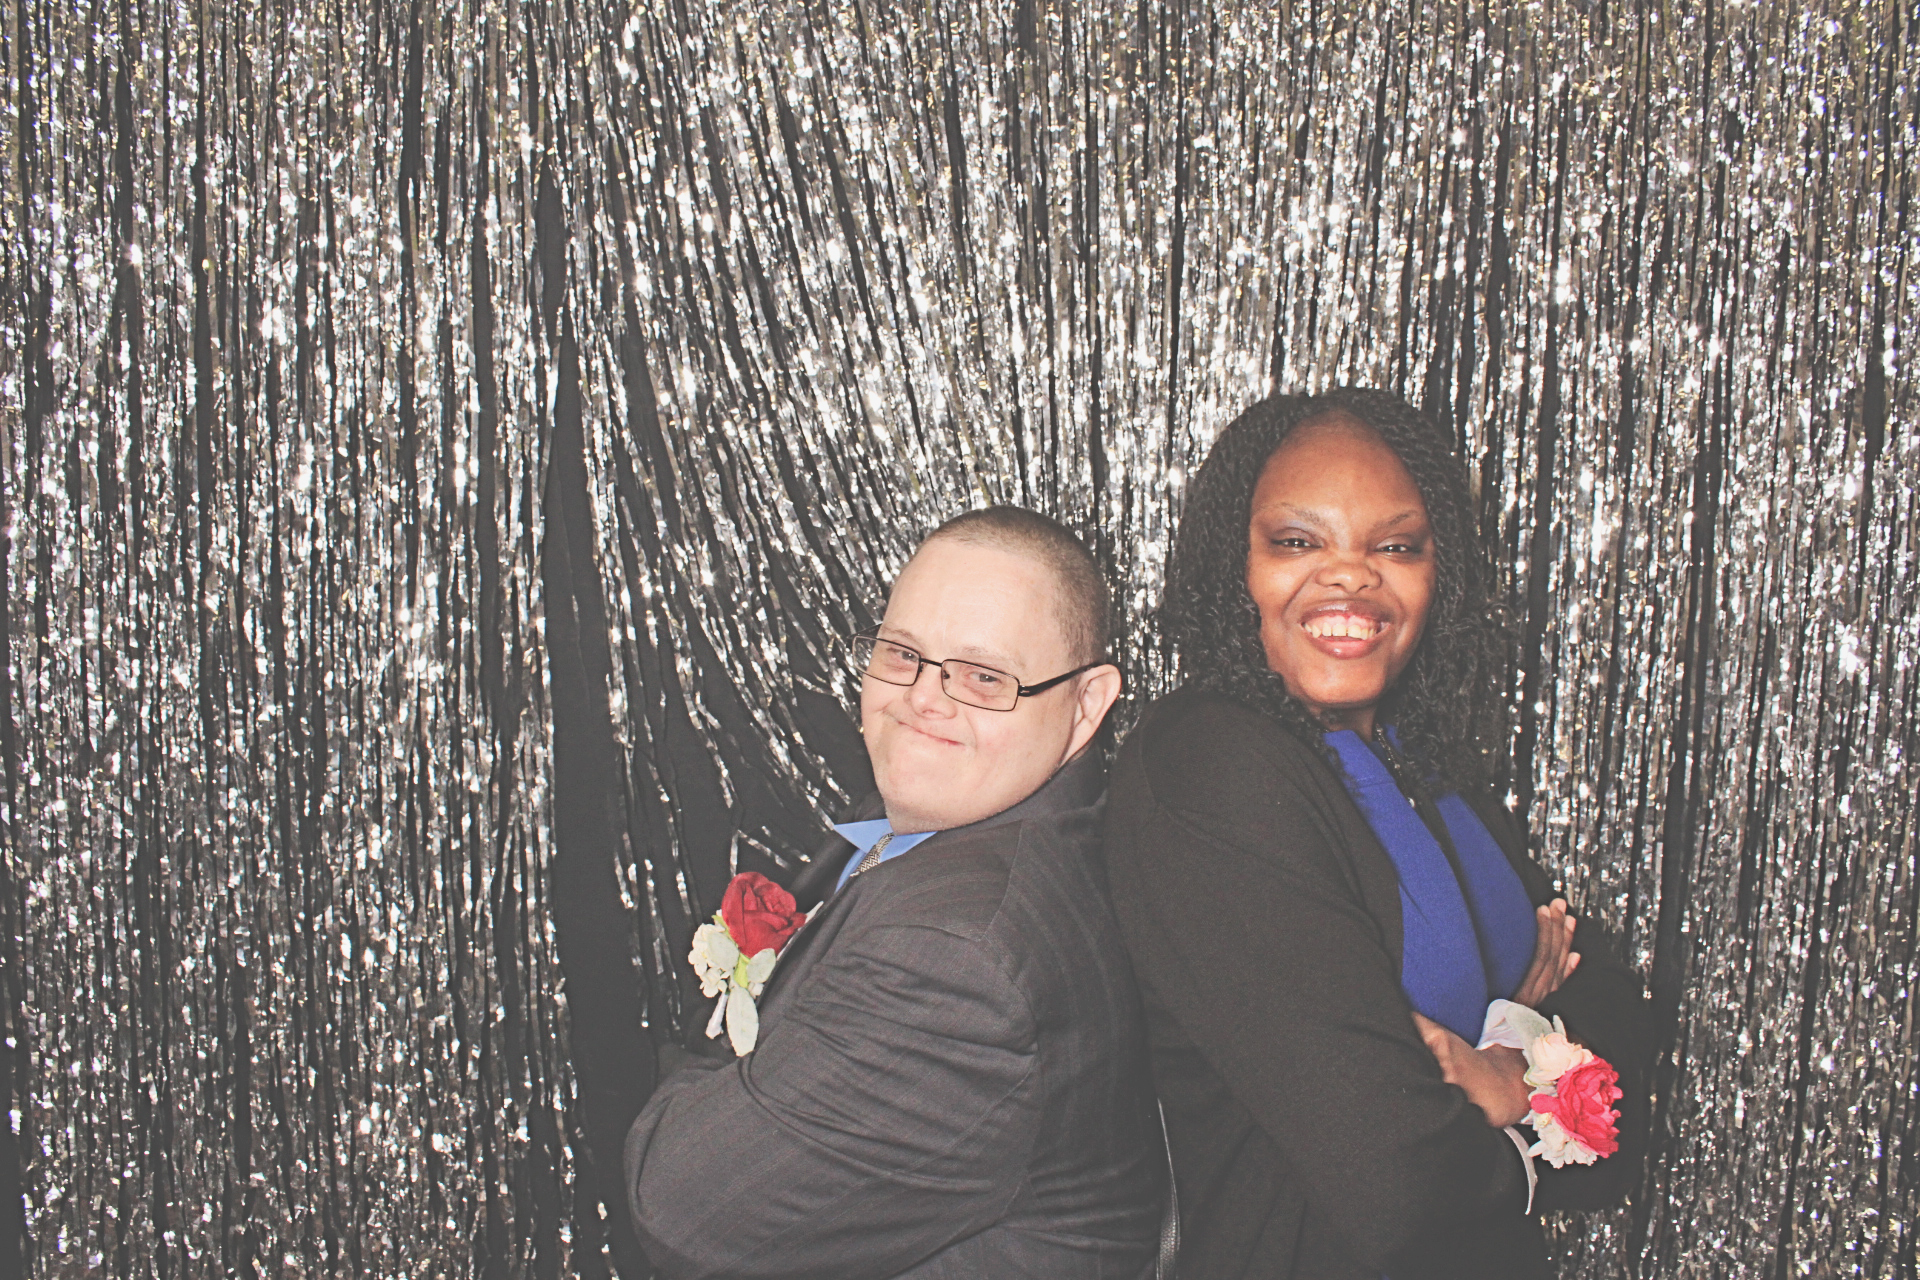 2-8-19 Atlanta Southcrest Church Photo Booth - Night to Shine Coweta 2019 - Robot Booth089.jpg